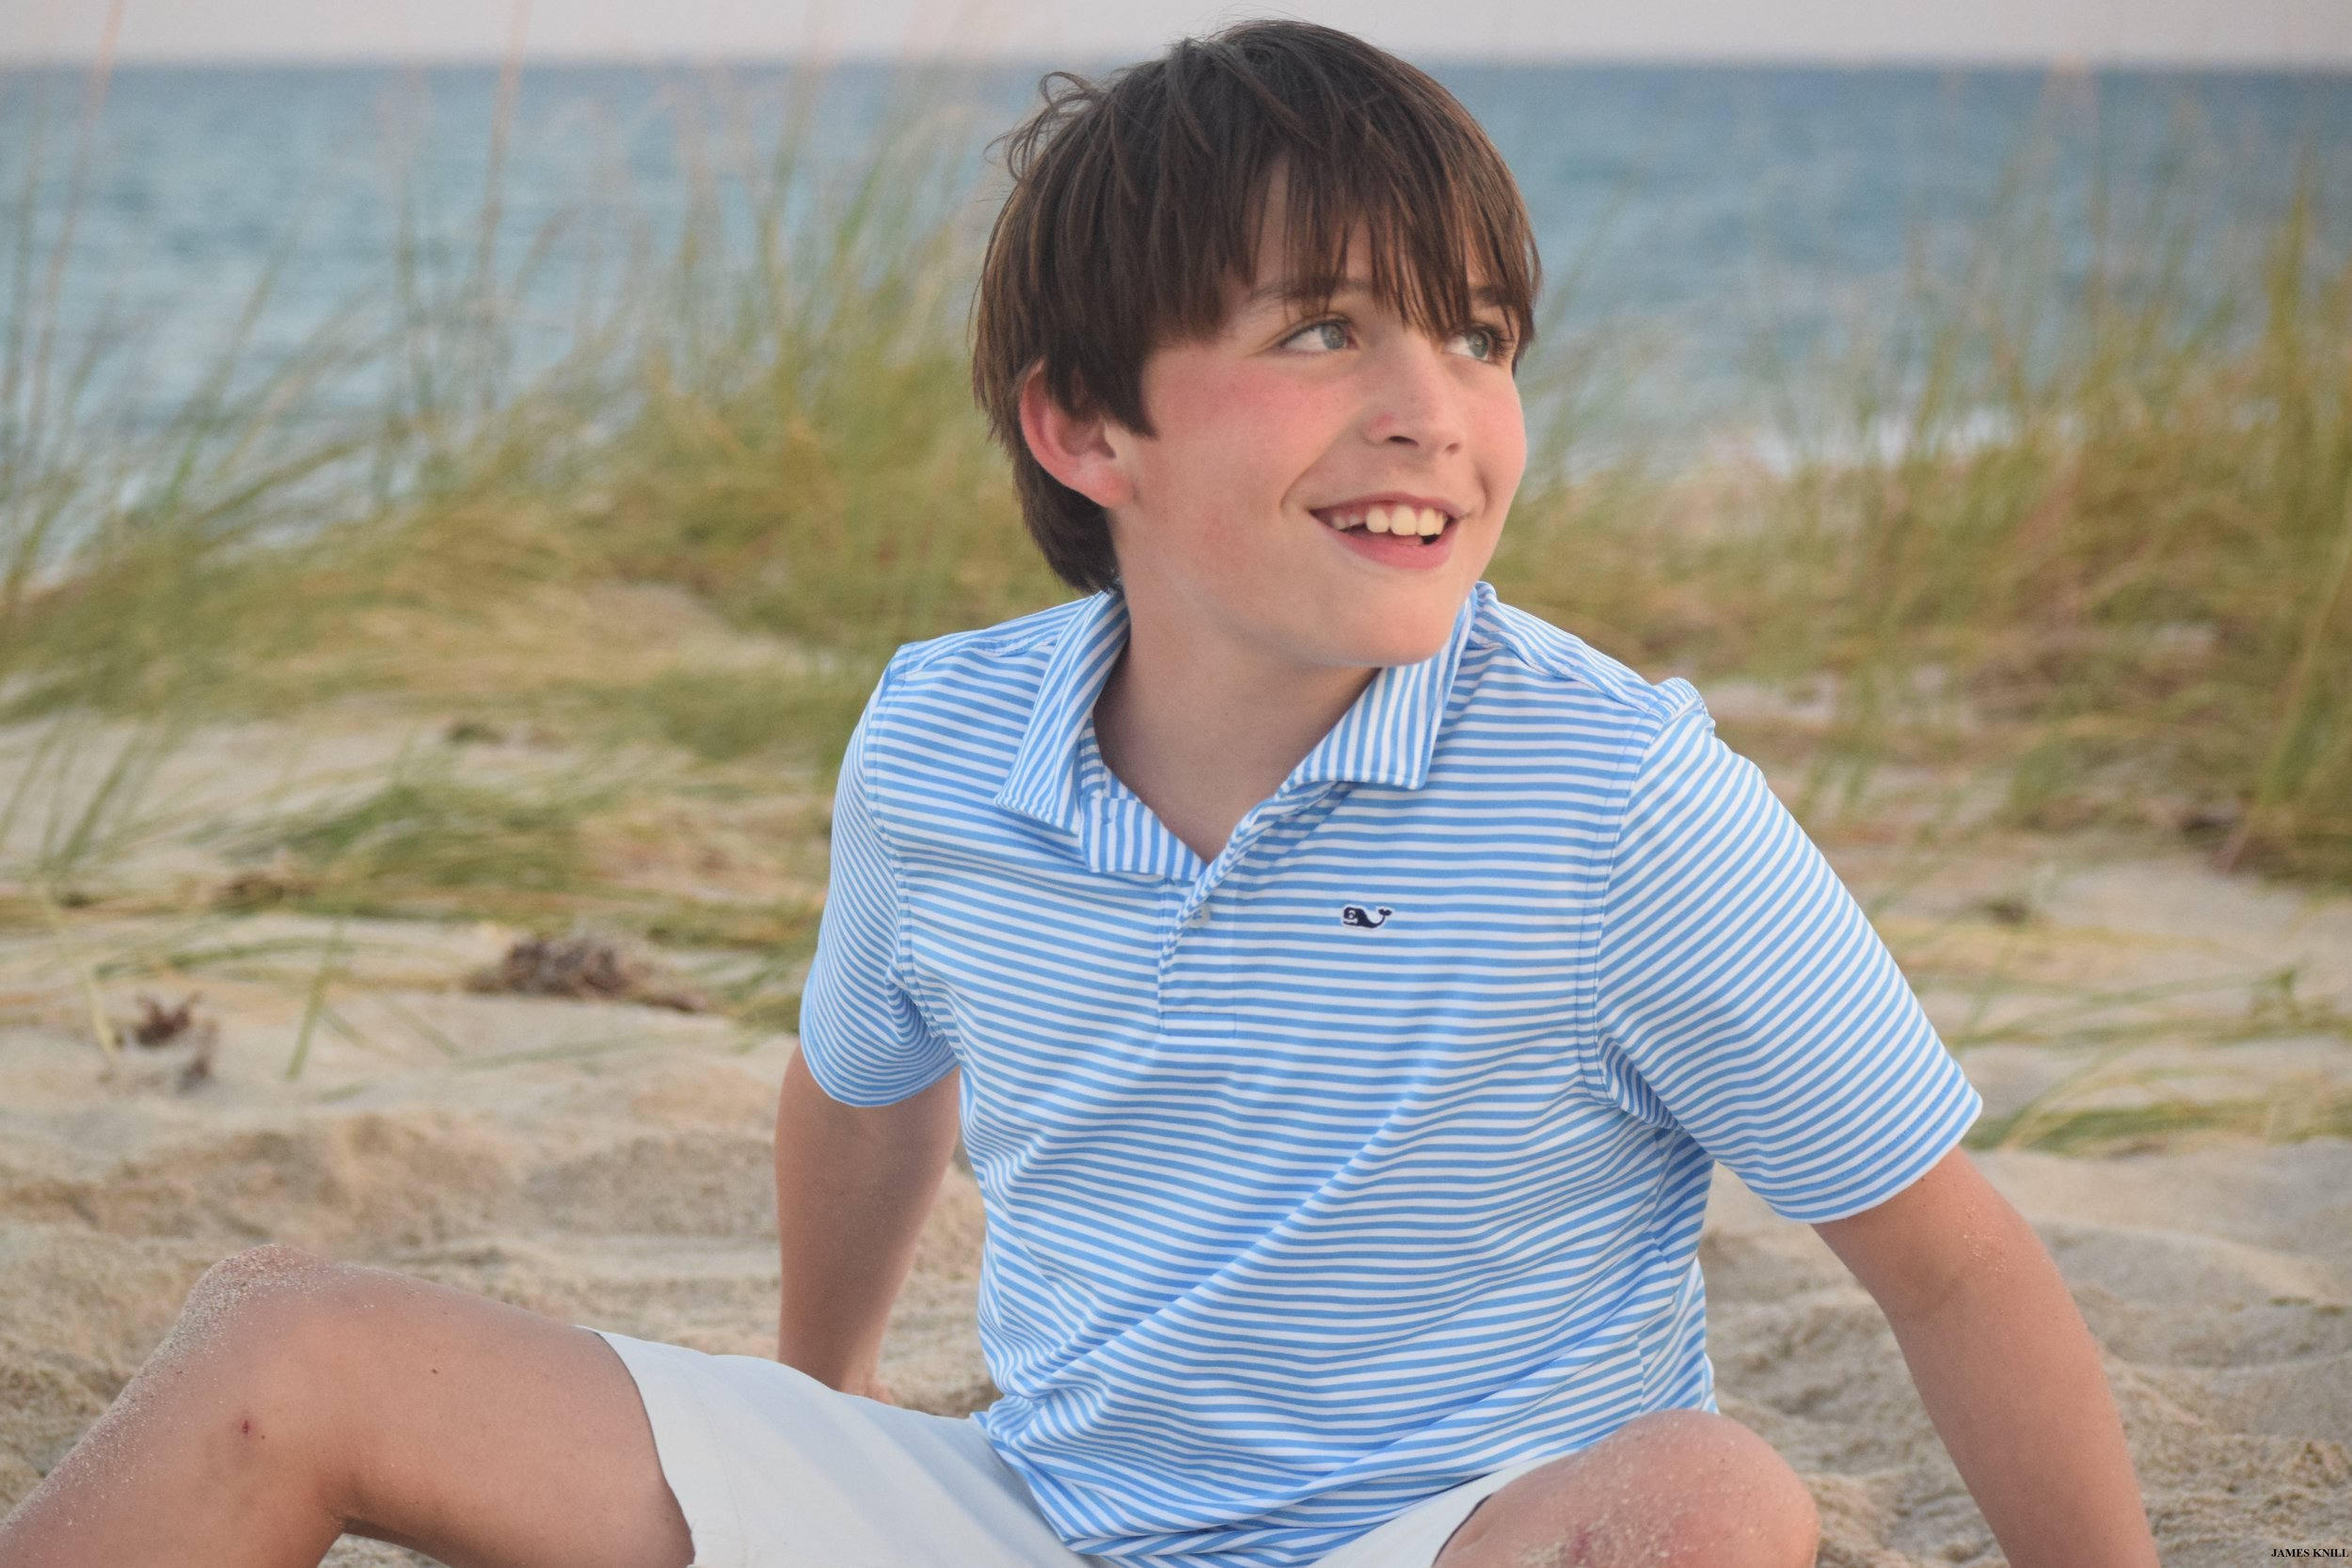 Portrait Of A Boy On A Beach. Photography By James Knill